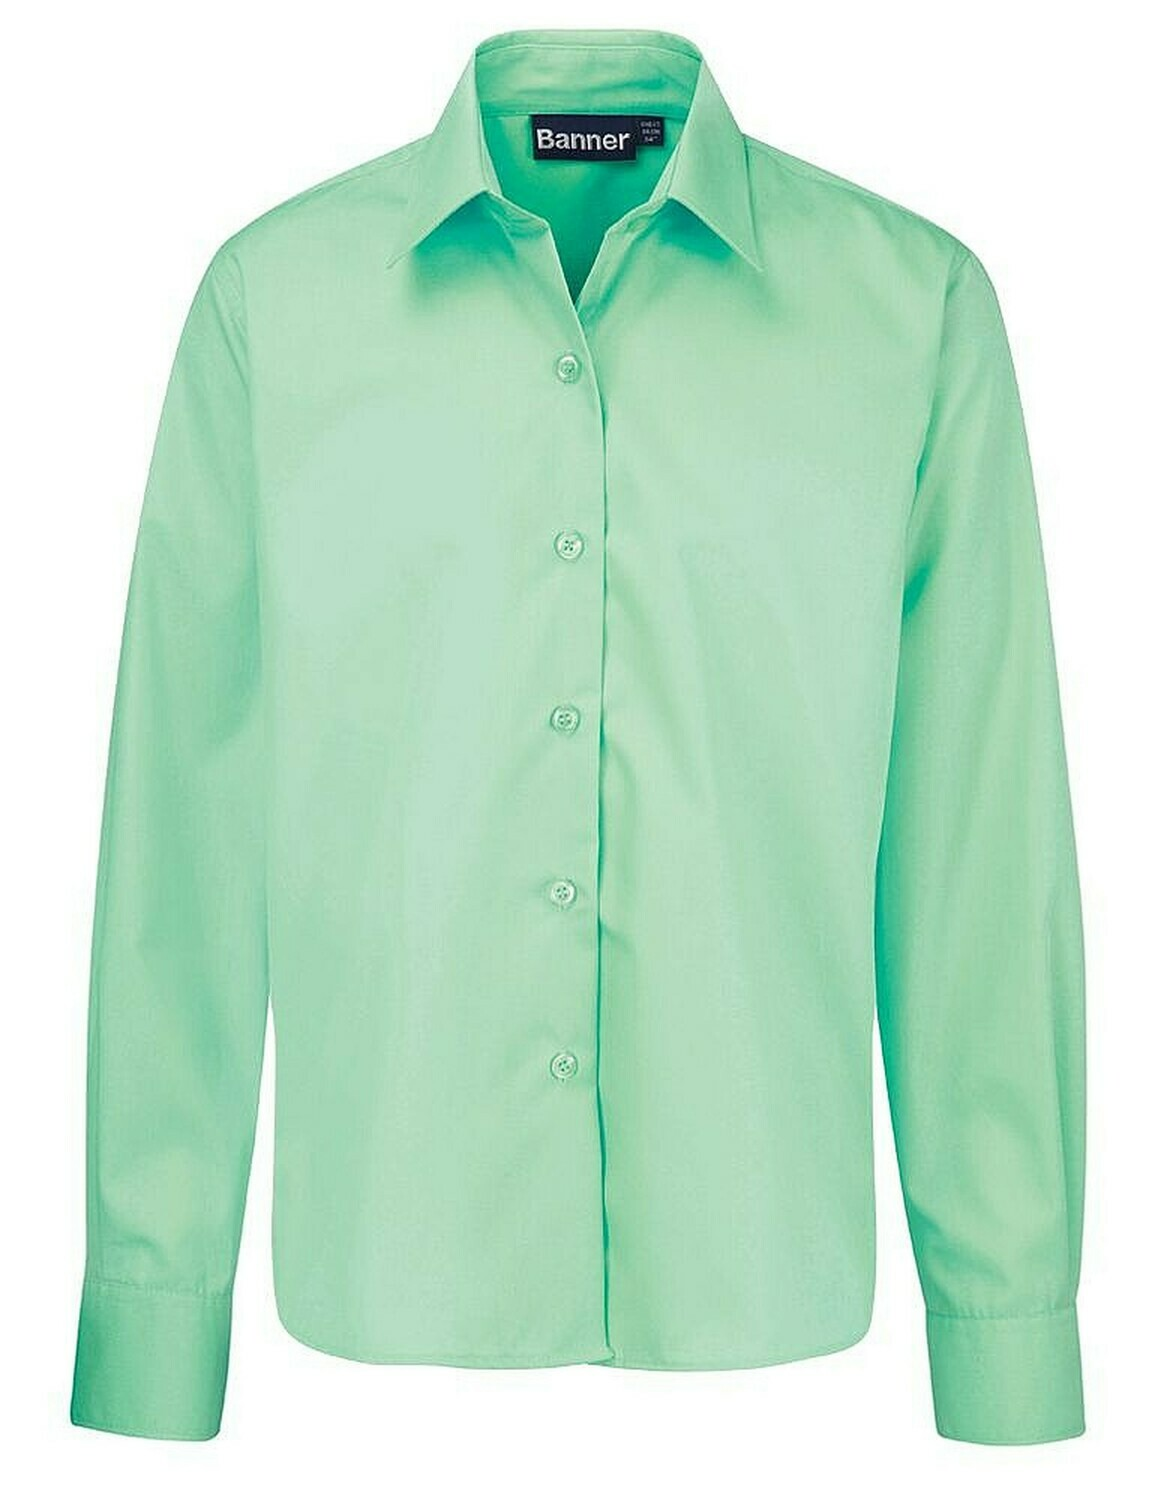 Long Sleeve Shirt for Boys in Green